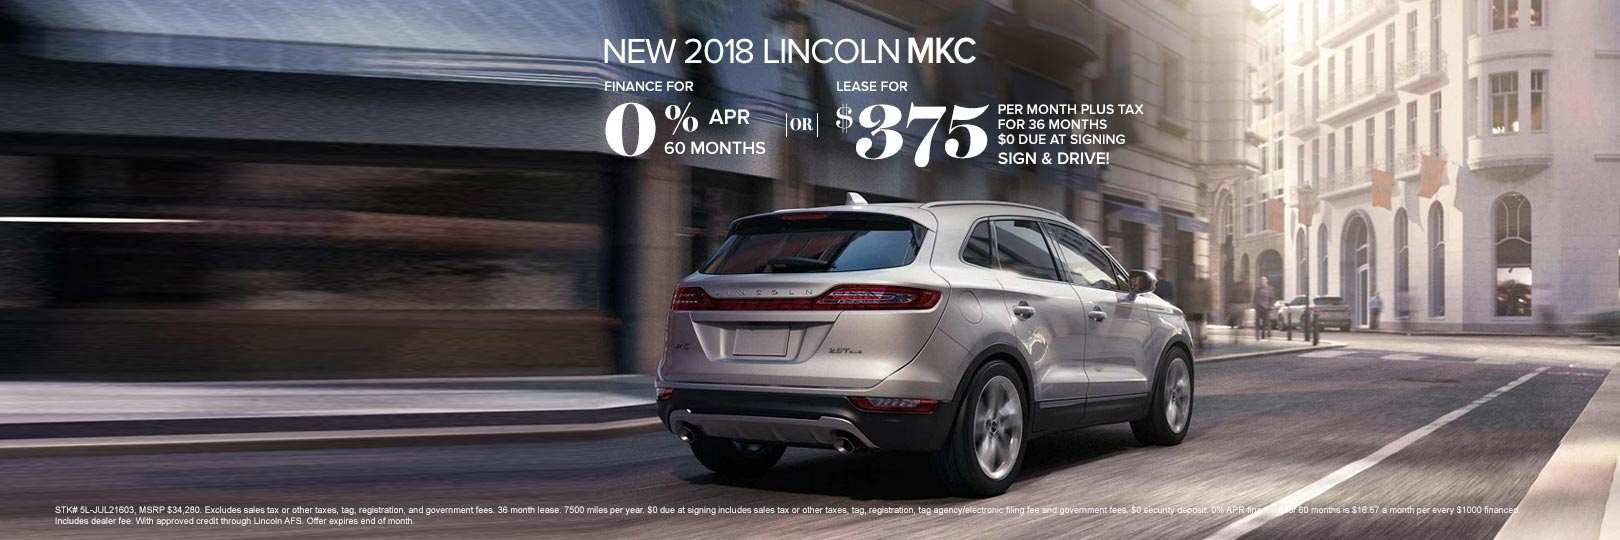 donnelly night a date lincoln near book ottawa dealership test me drive